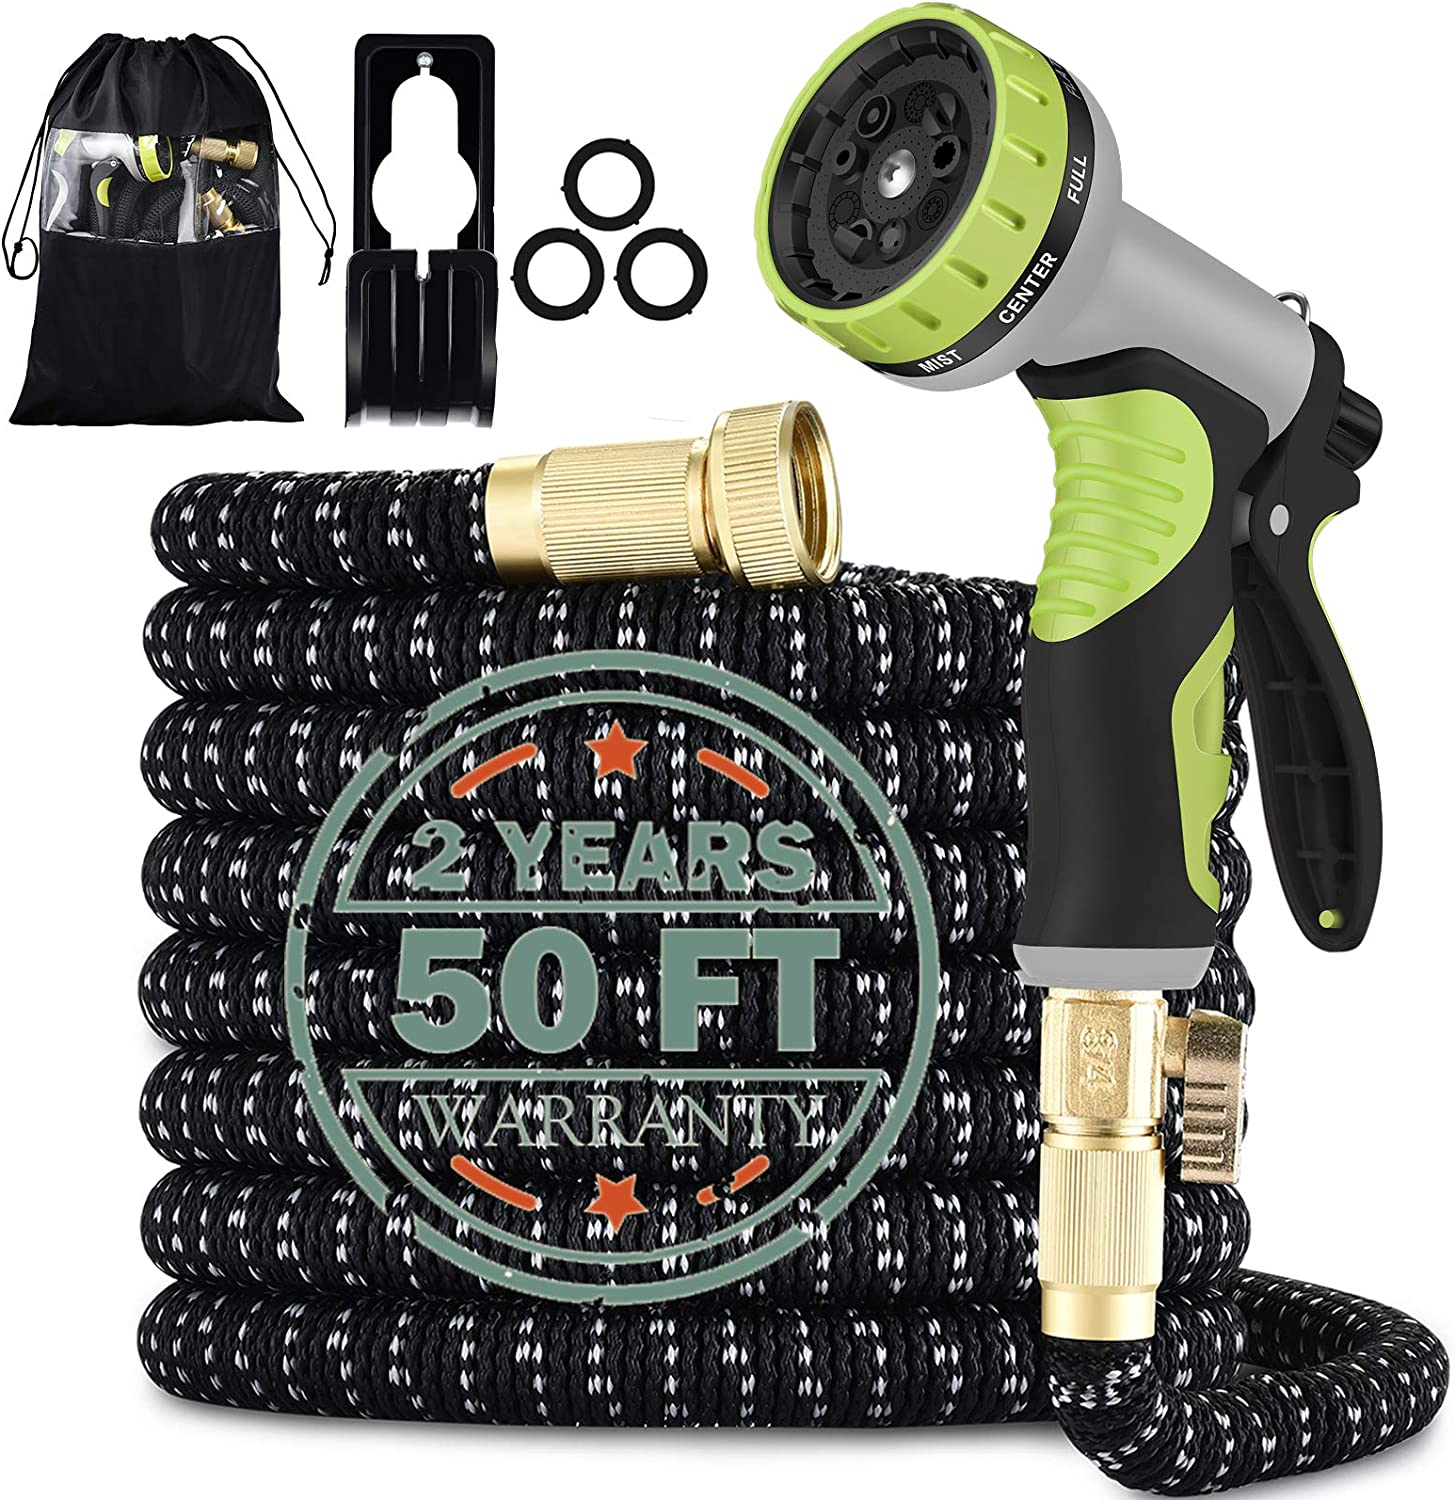 Expandable Garden Hose 50FT with 9 Function Nozzle, Leakproof Lightweight Expanding Garden Water Hose with Solid Brass Fittings, Extra Strength 3750D Durable Gardening Flexible Hose.(50FT)